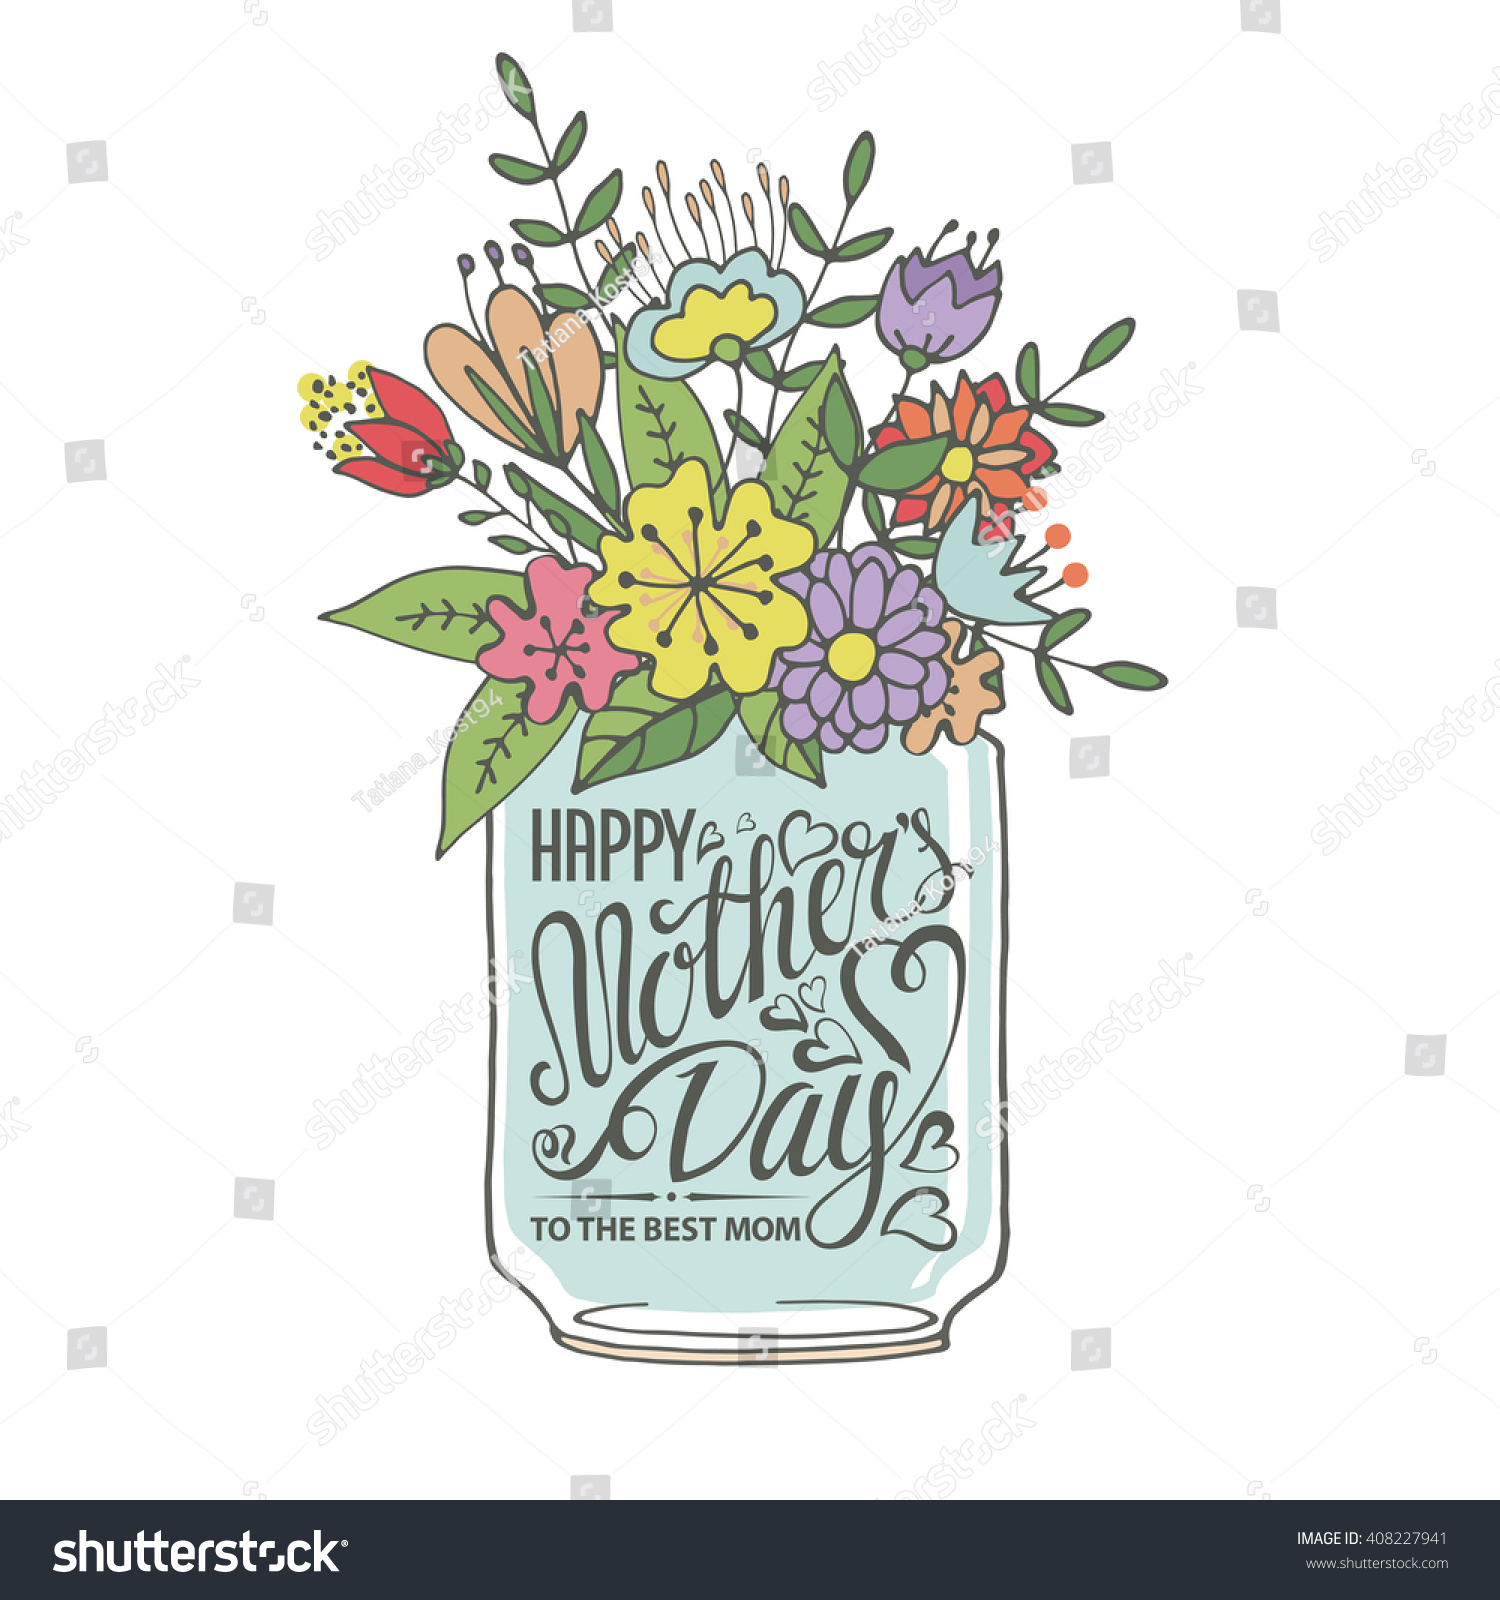 heart flowers mothers day card mothers daytypographic cardlettering heartdoodle flowers 6702